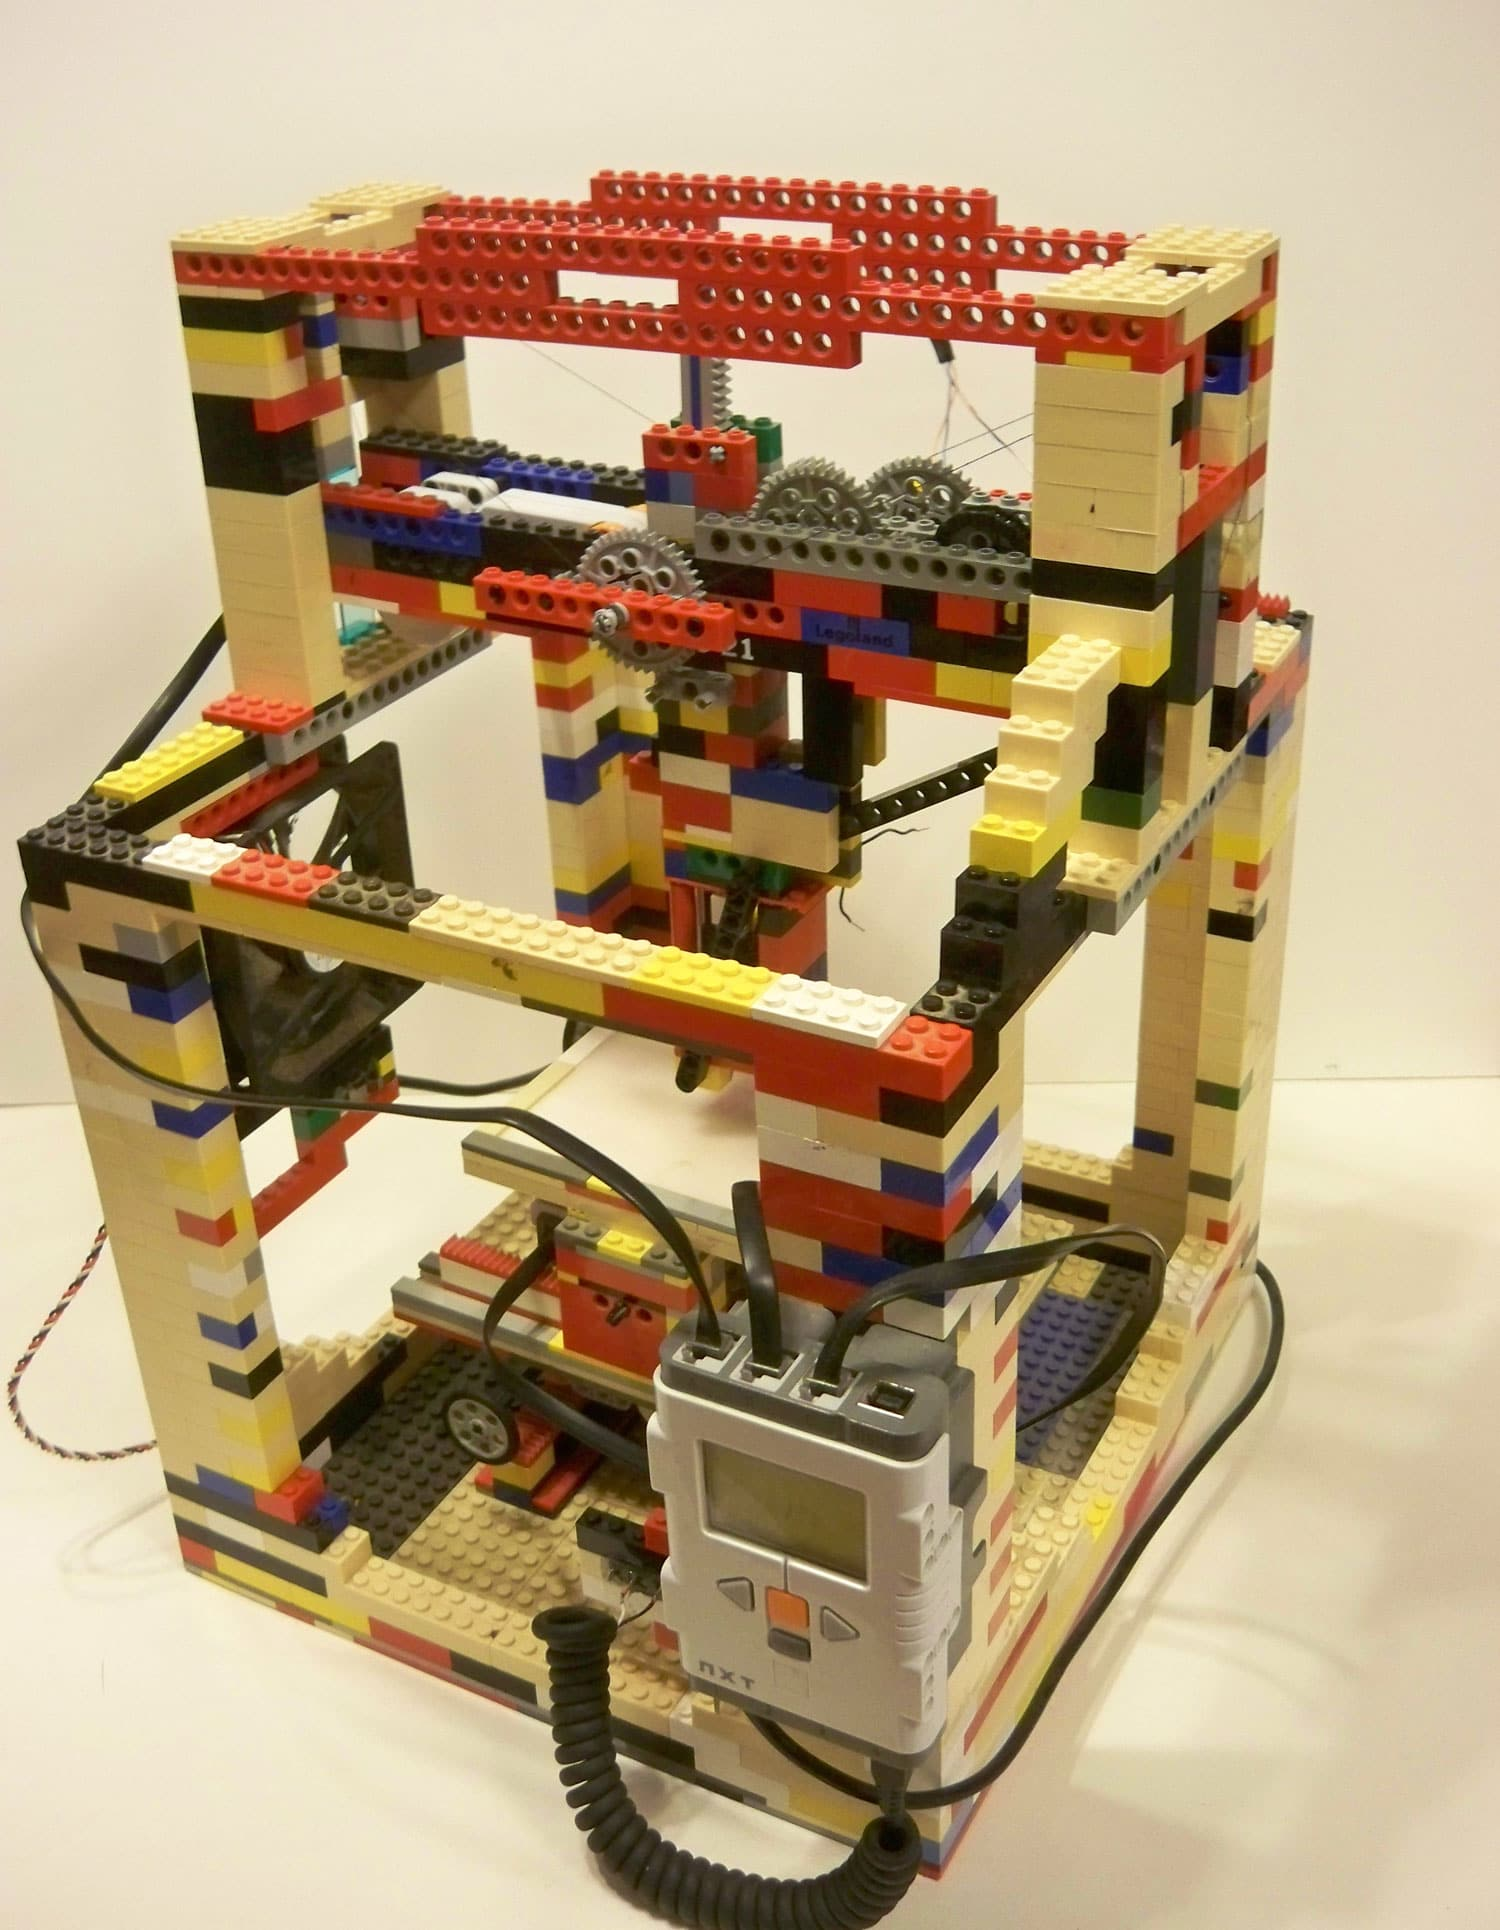 functional-lego-3d-printer-build